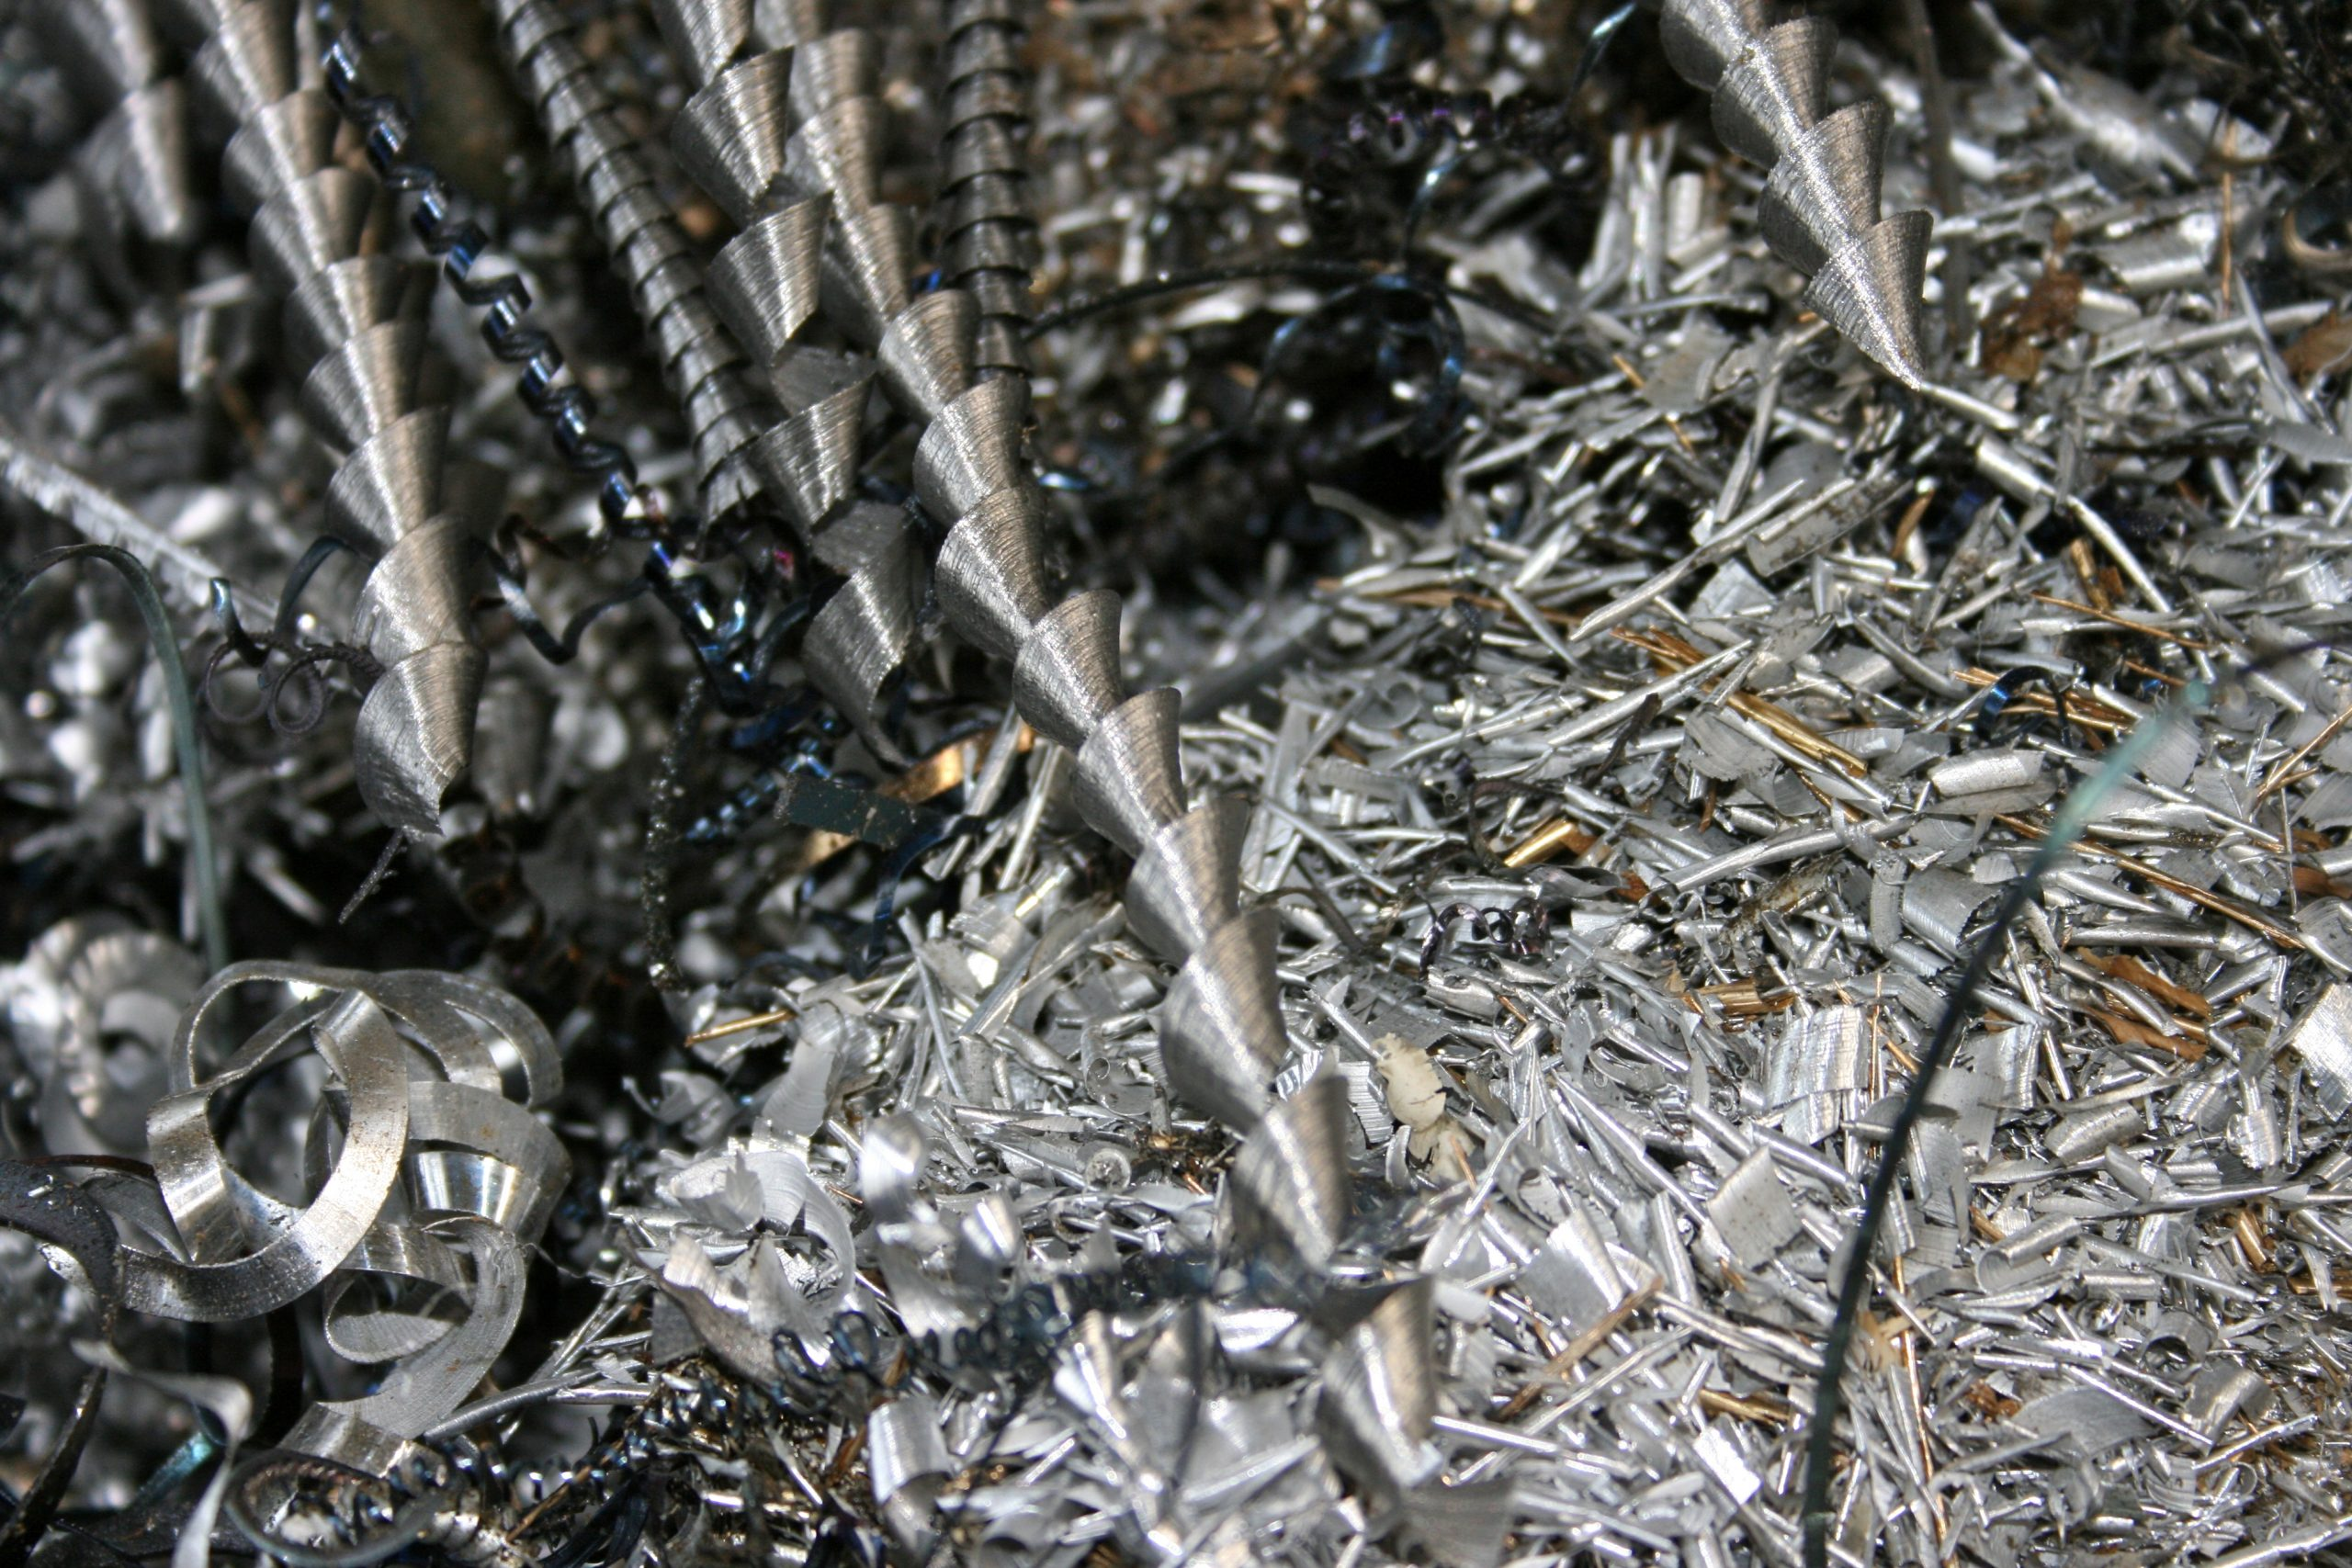 Why Metal Recycling in Scarborough is Important